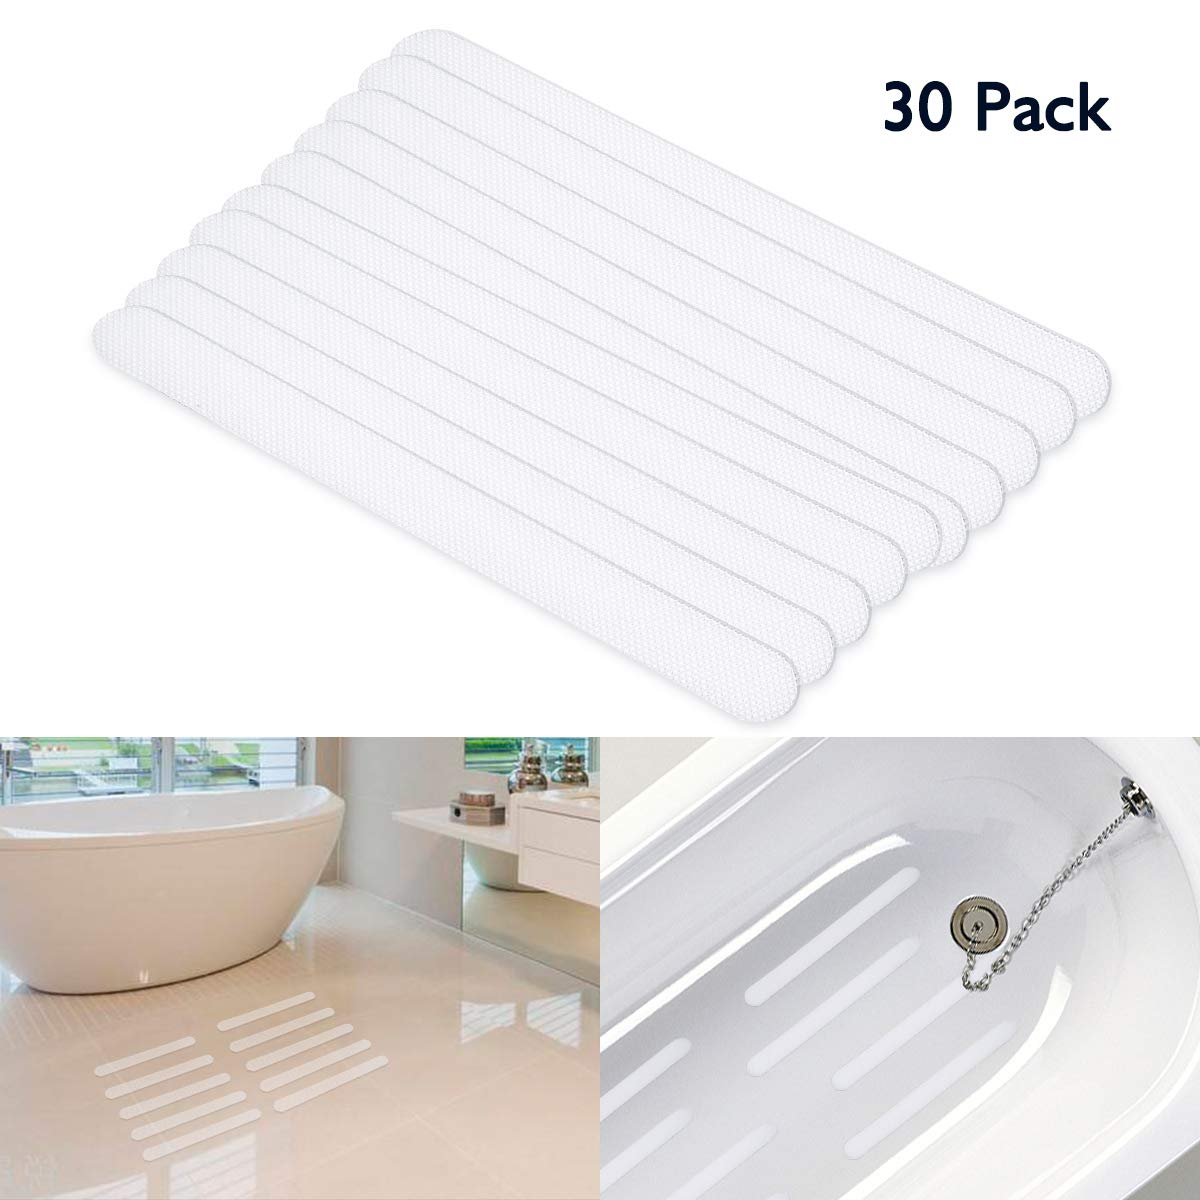 SAFETYON Bathtub Stickers Non-slip Strips (30 Pcs) Anti Skid Tape for Shower, Tub, Steps, Floor Extra Strength Adhesive Grip Safety Treads for Baby, Senior, Adult (Clear) SAFETYONMechi1017